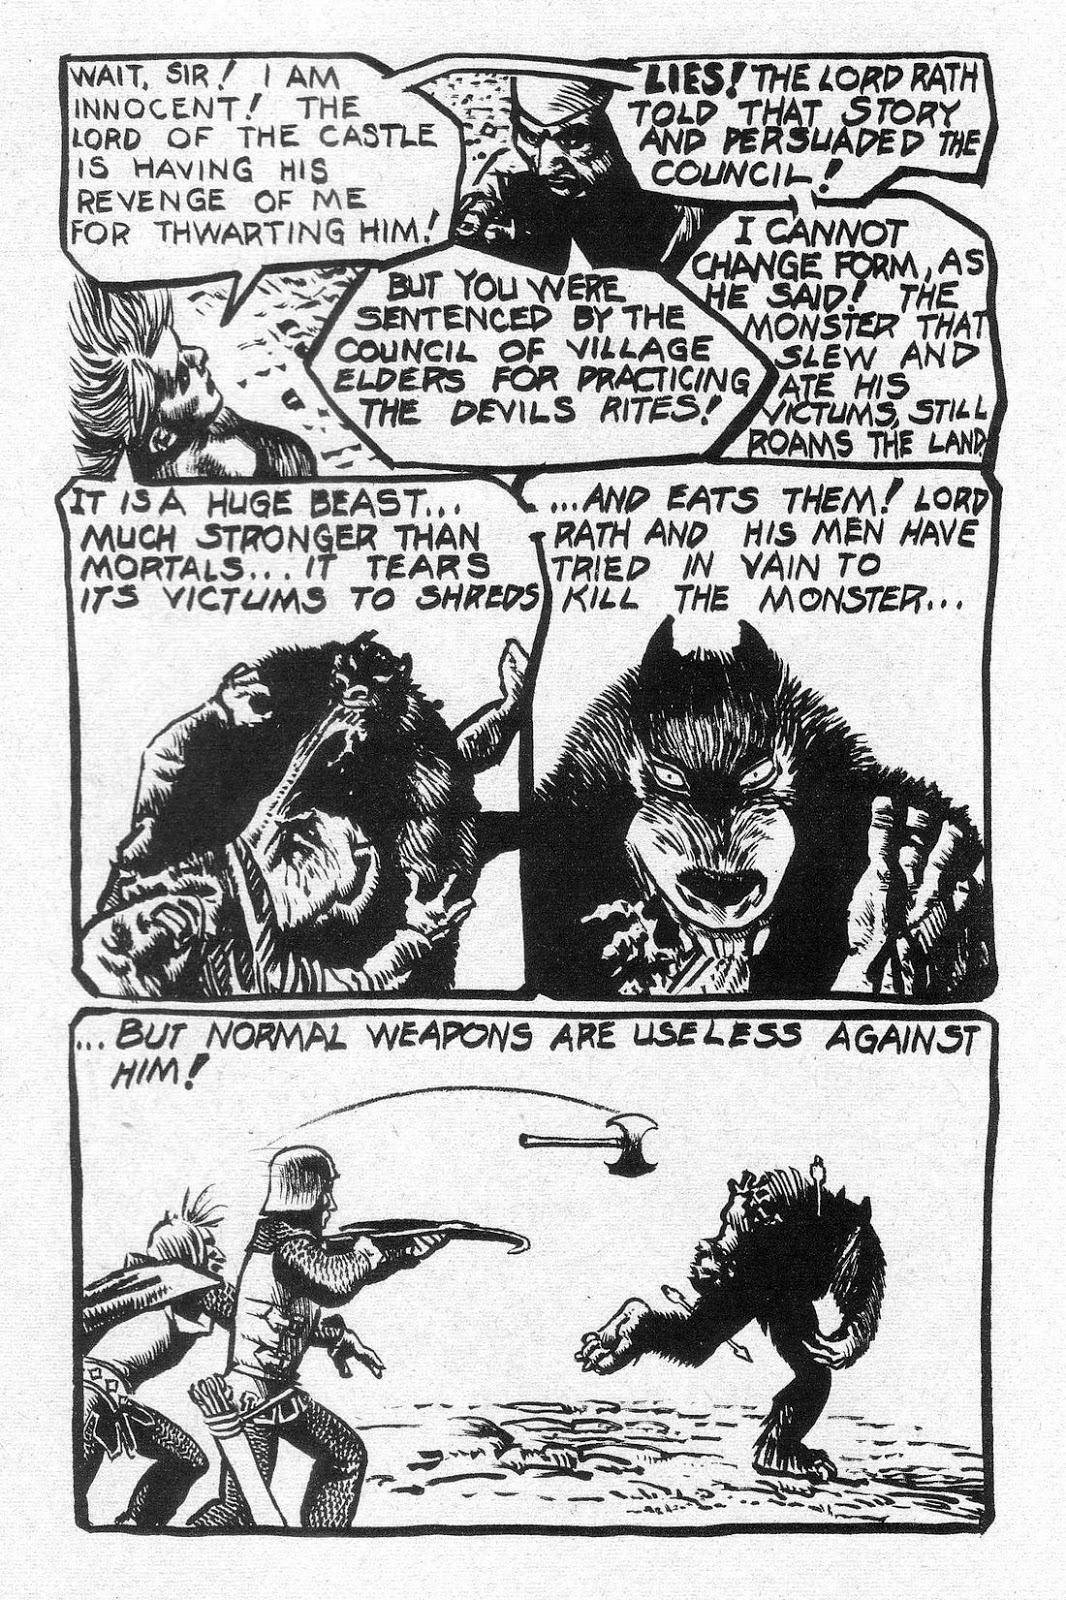 Drawn werewolf comic Corben's Jungle werewolf comic reminiscent